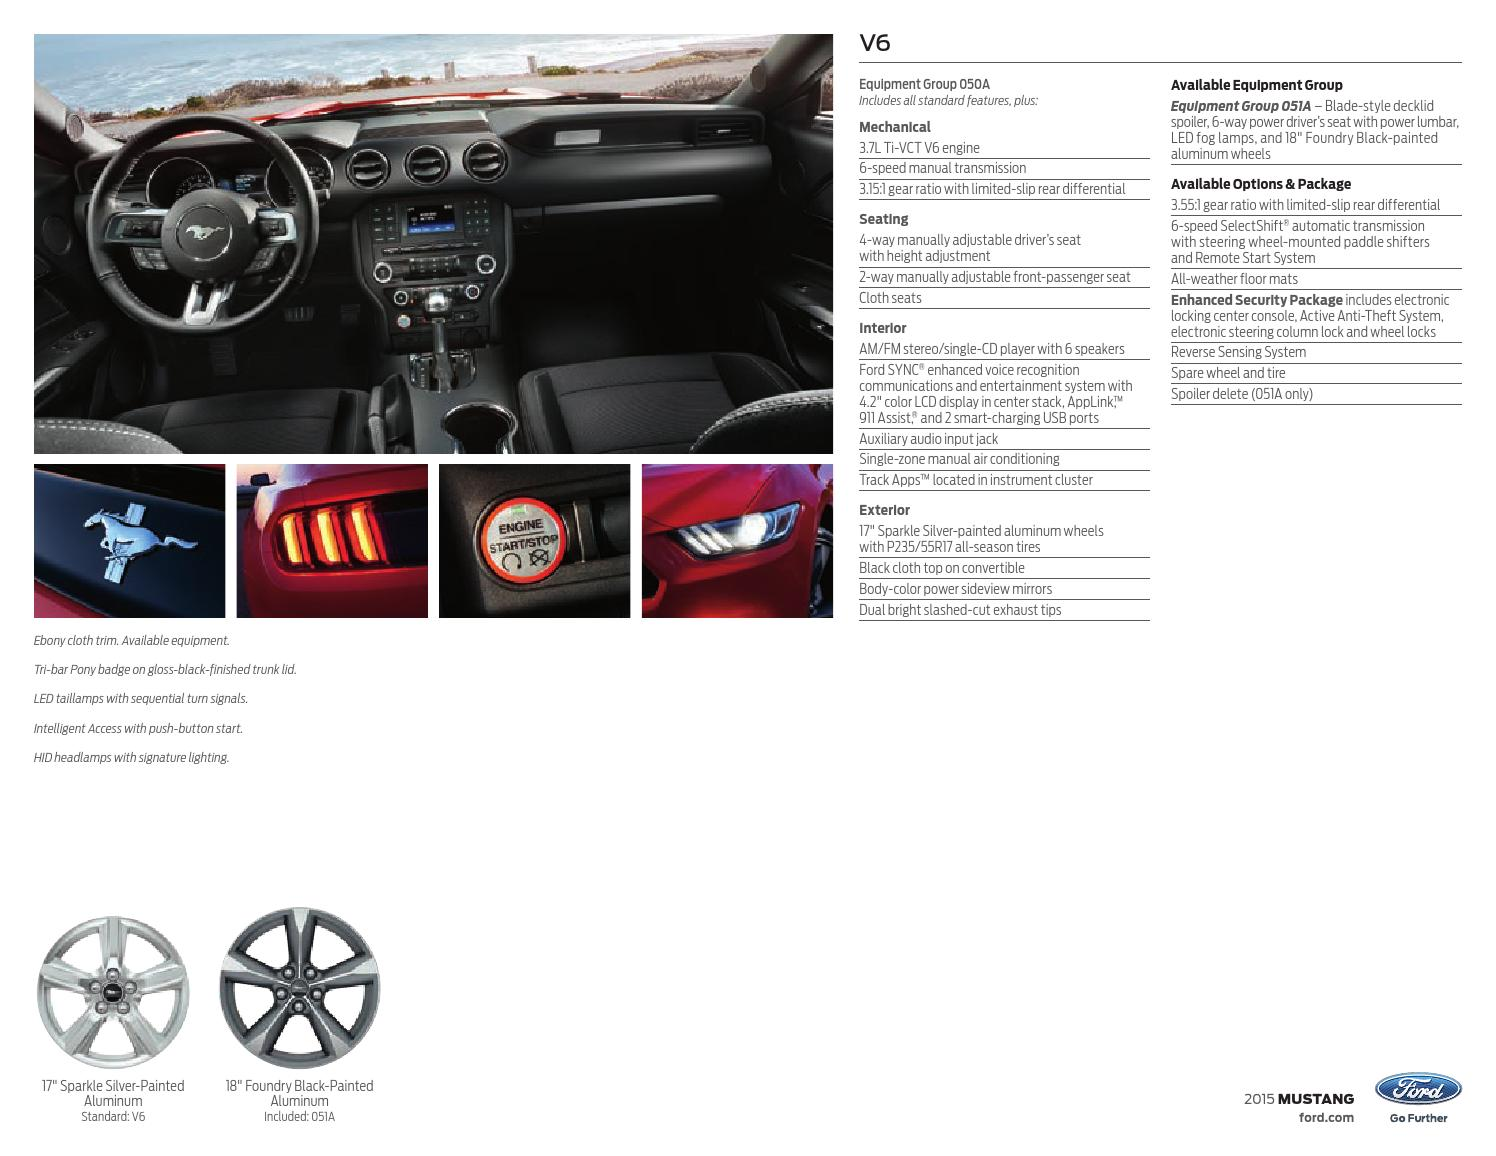 2015 Ford Mustang Factory Brochure - Bob Smith Ford by Bob Smith